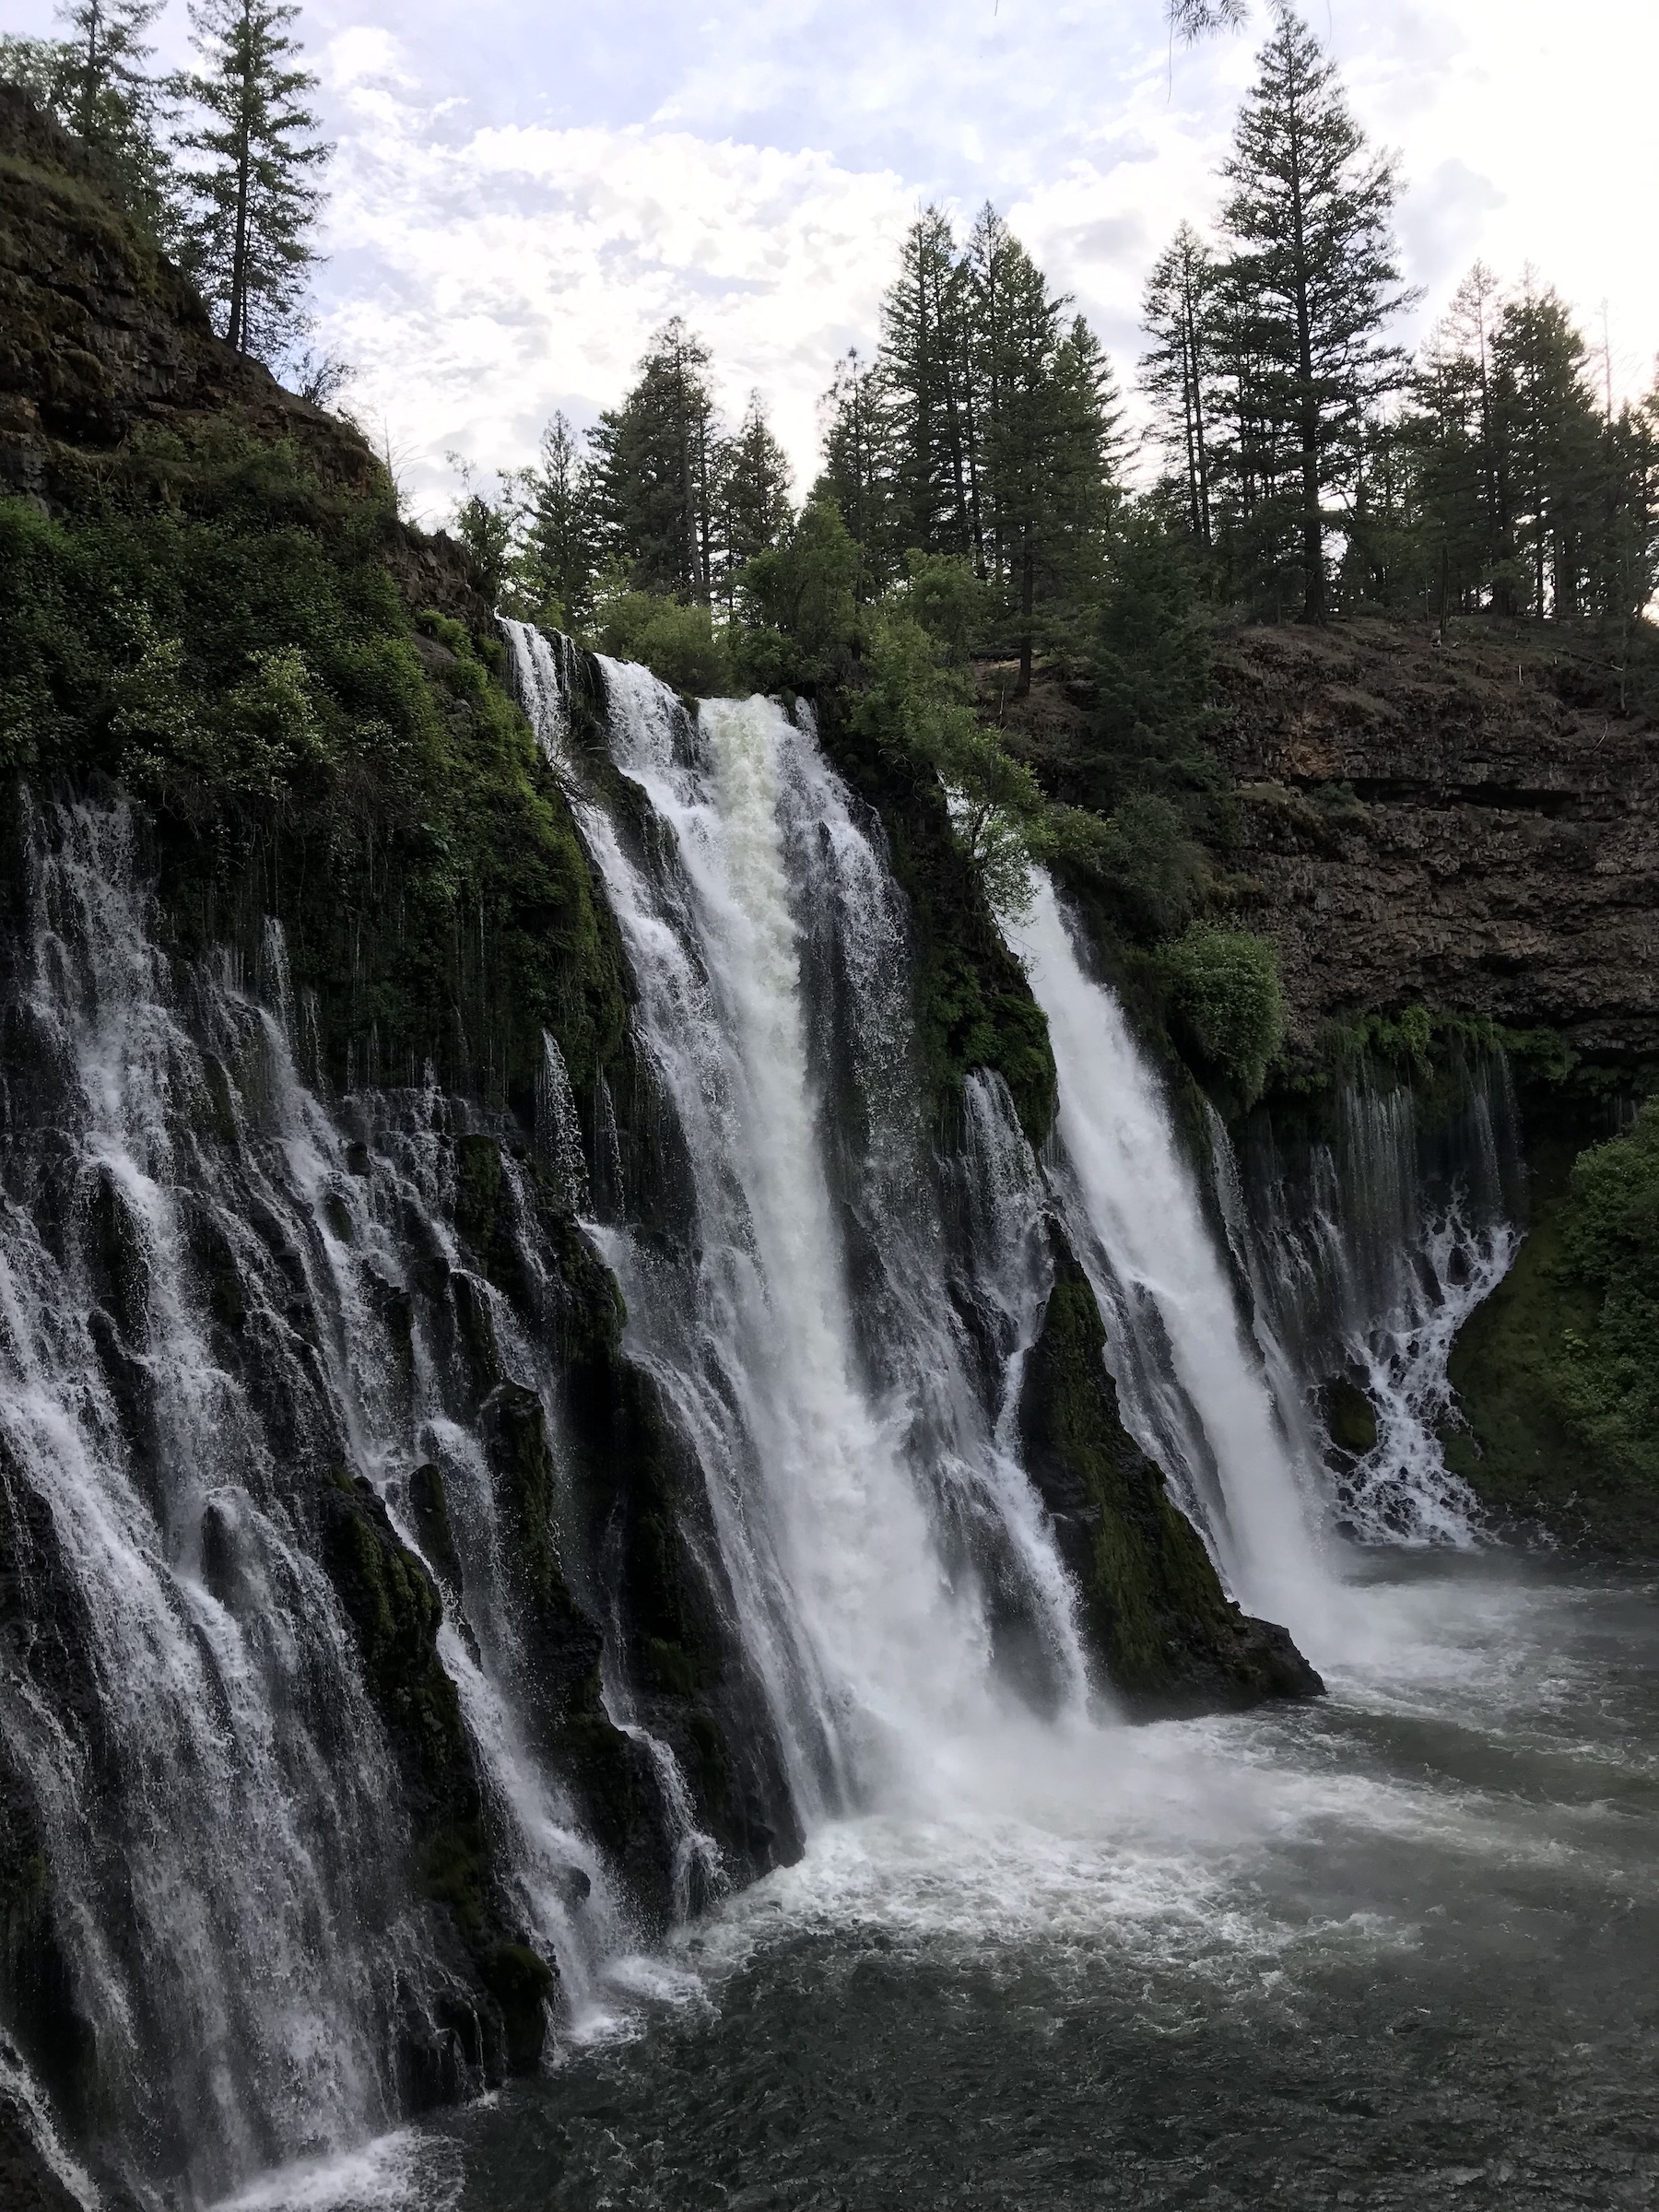 Several small waterfalls spill out of the side of a cliff. There are lots of evergreen trees surrounding the falls.